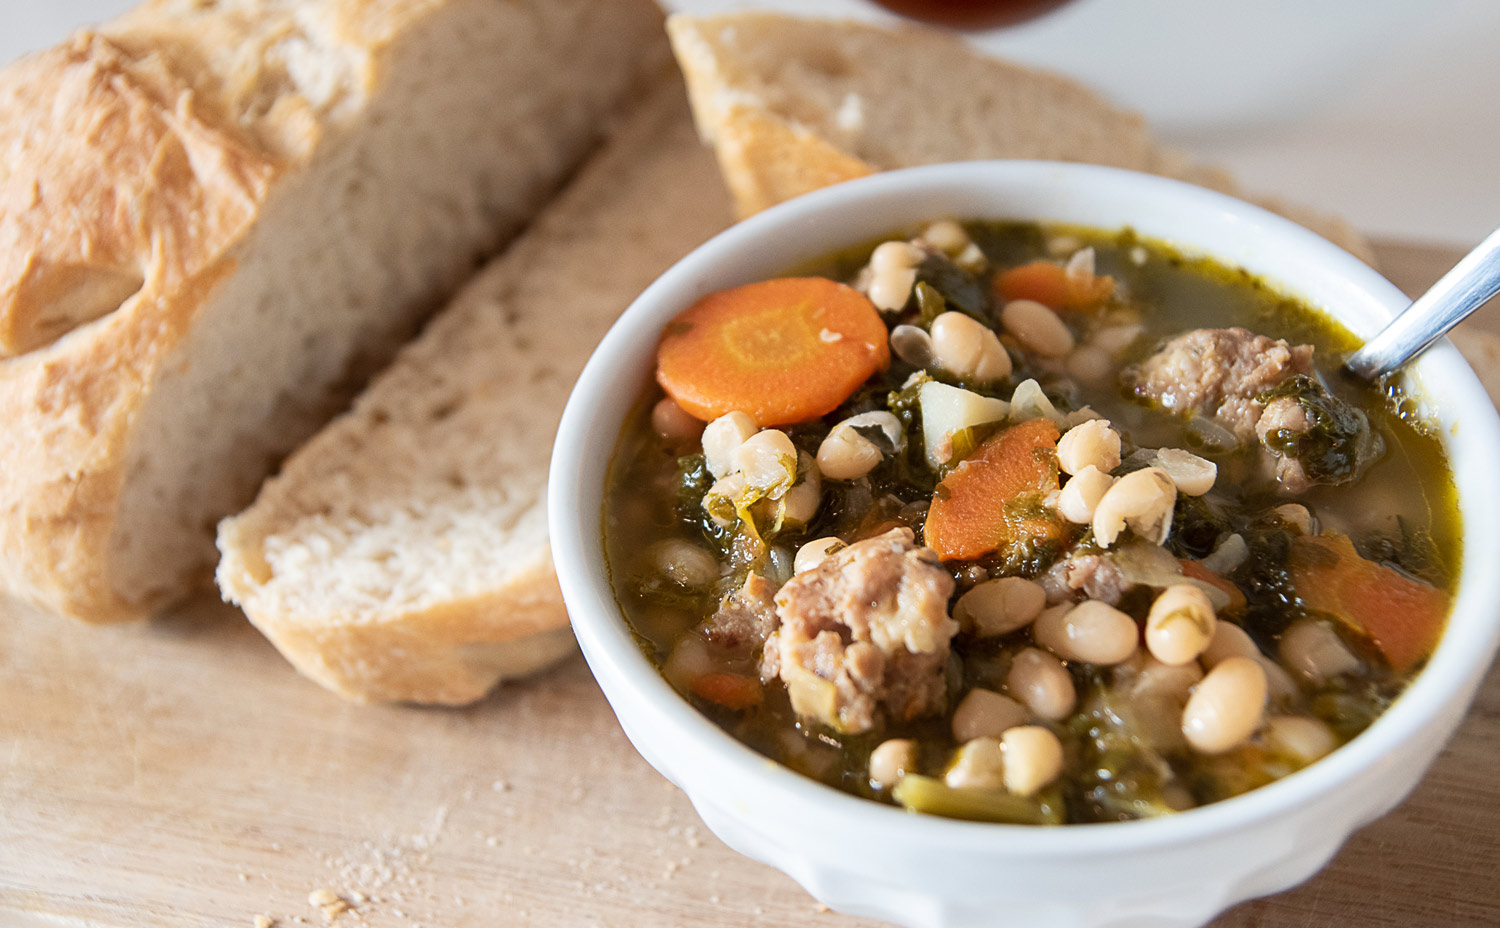 Spicy Sausage, Kale and White Bean Soup